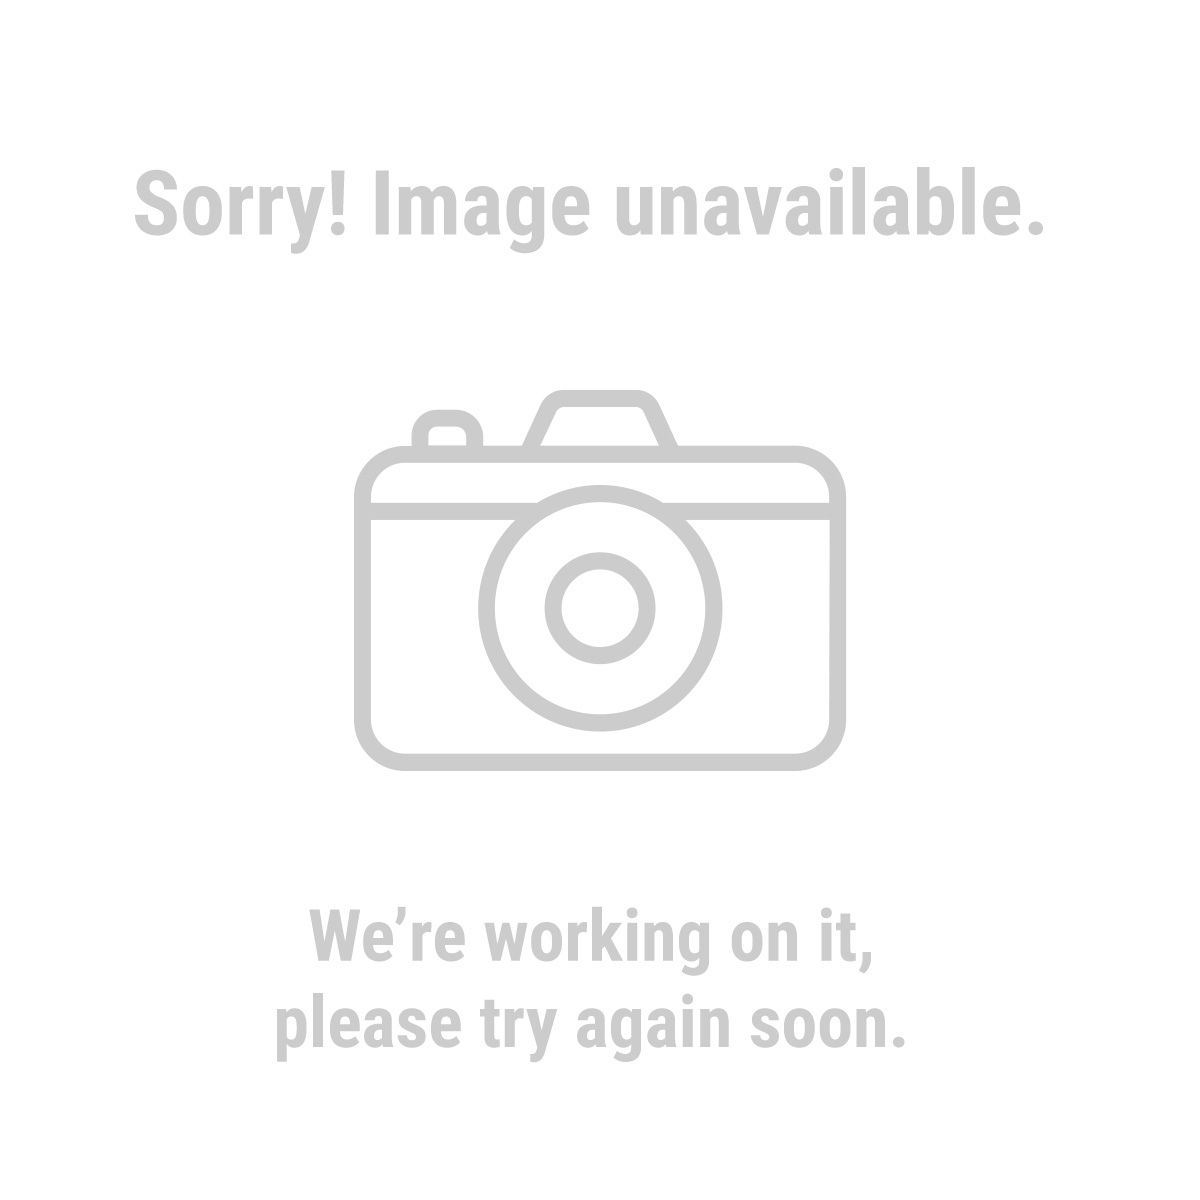 U.S. General 92170 Amara® Leather Mechanic's Gloves, Large